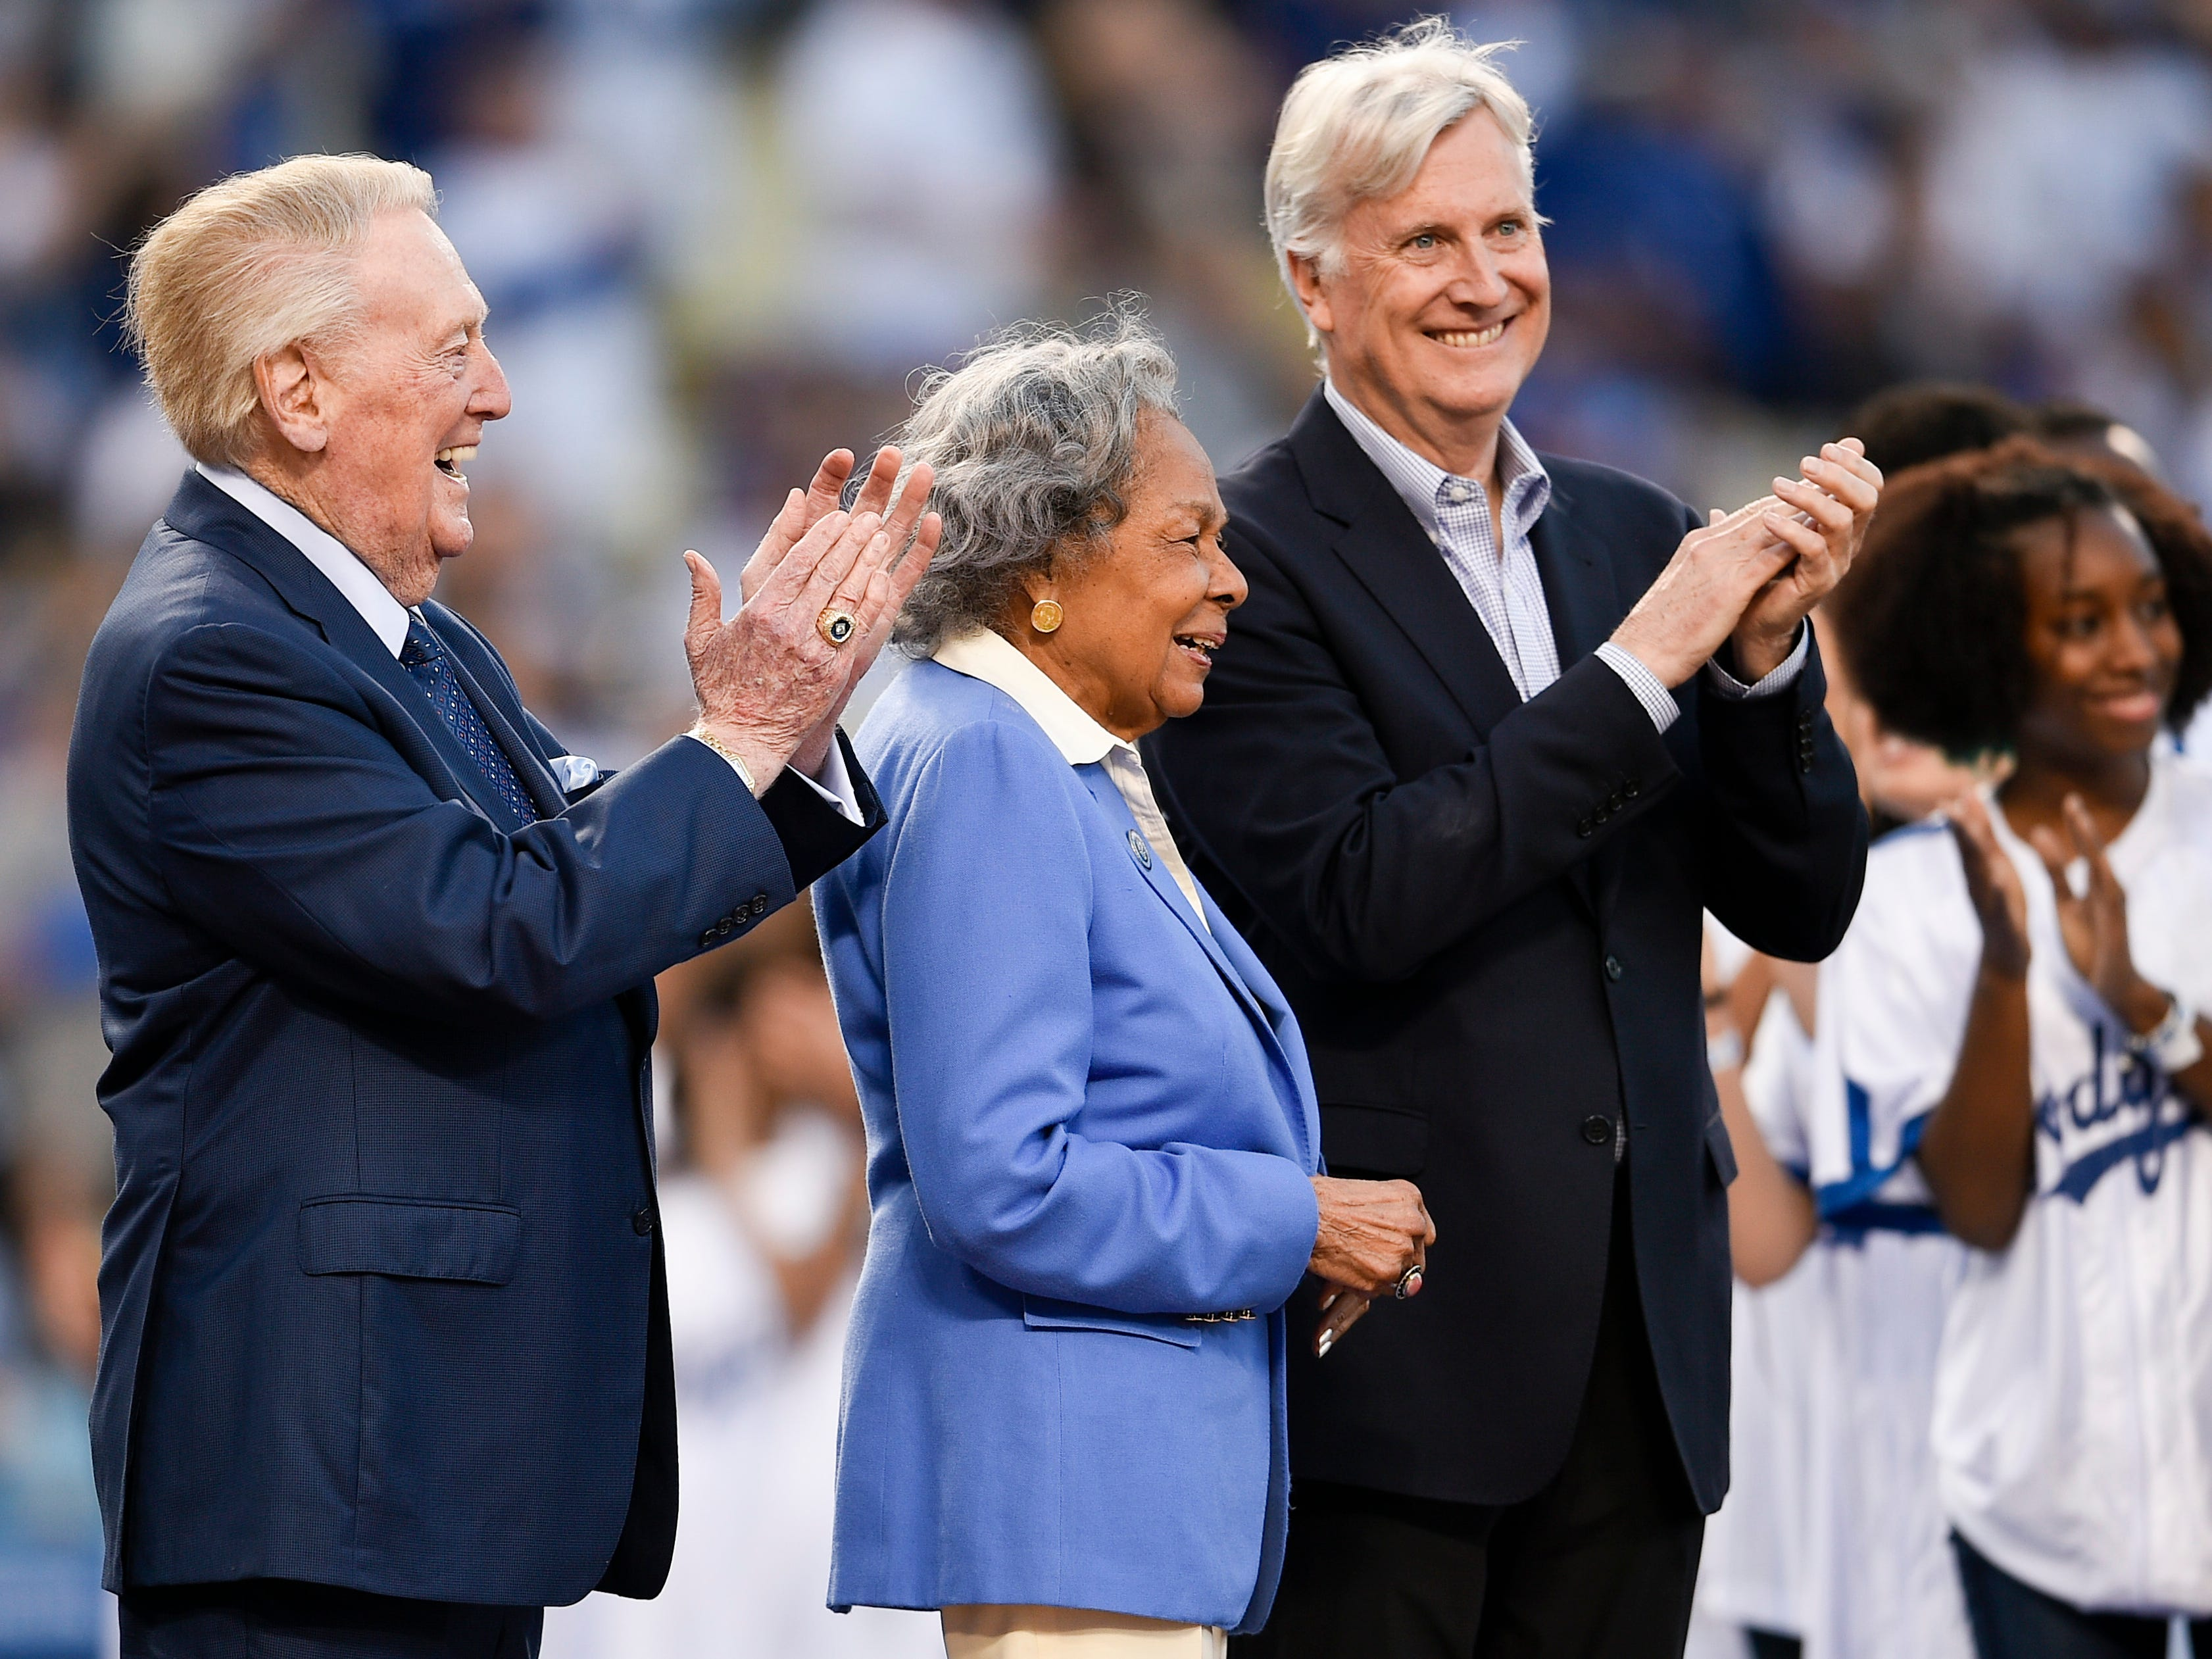 Former Los Angeles Dodgers broadcaster Vin Scully (left) and Rachel Robinson react after the ceremonial first pitch prior to the game against the Cincinnati Reds at Dodger Stadium.